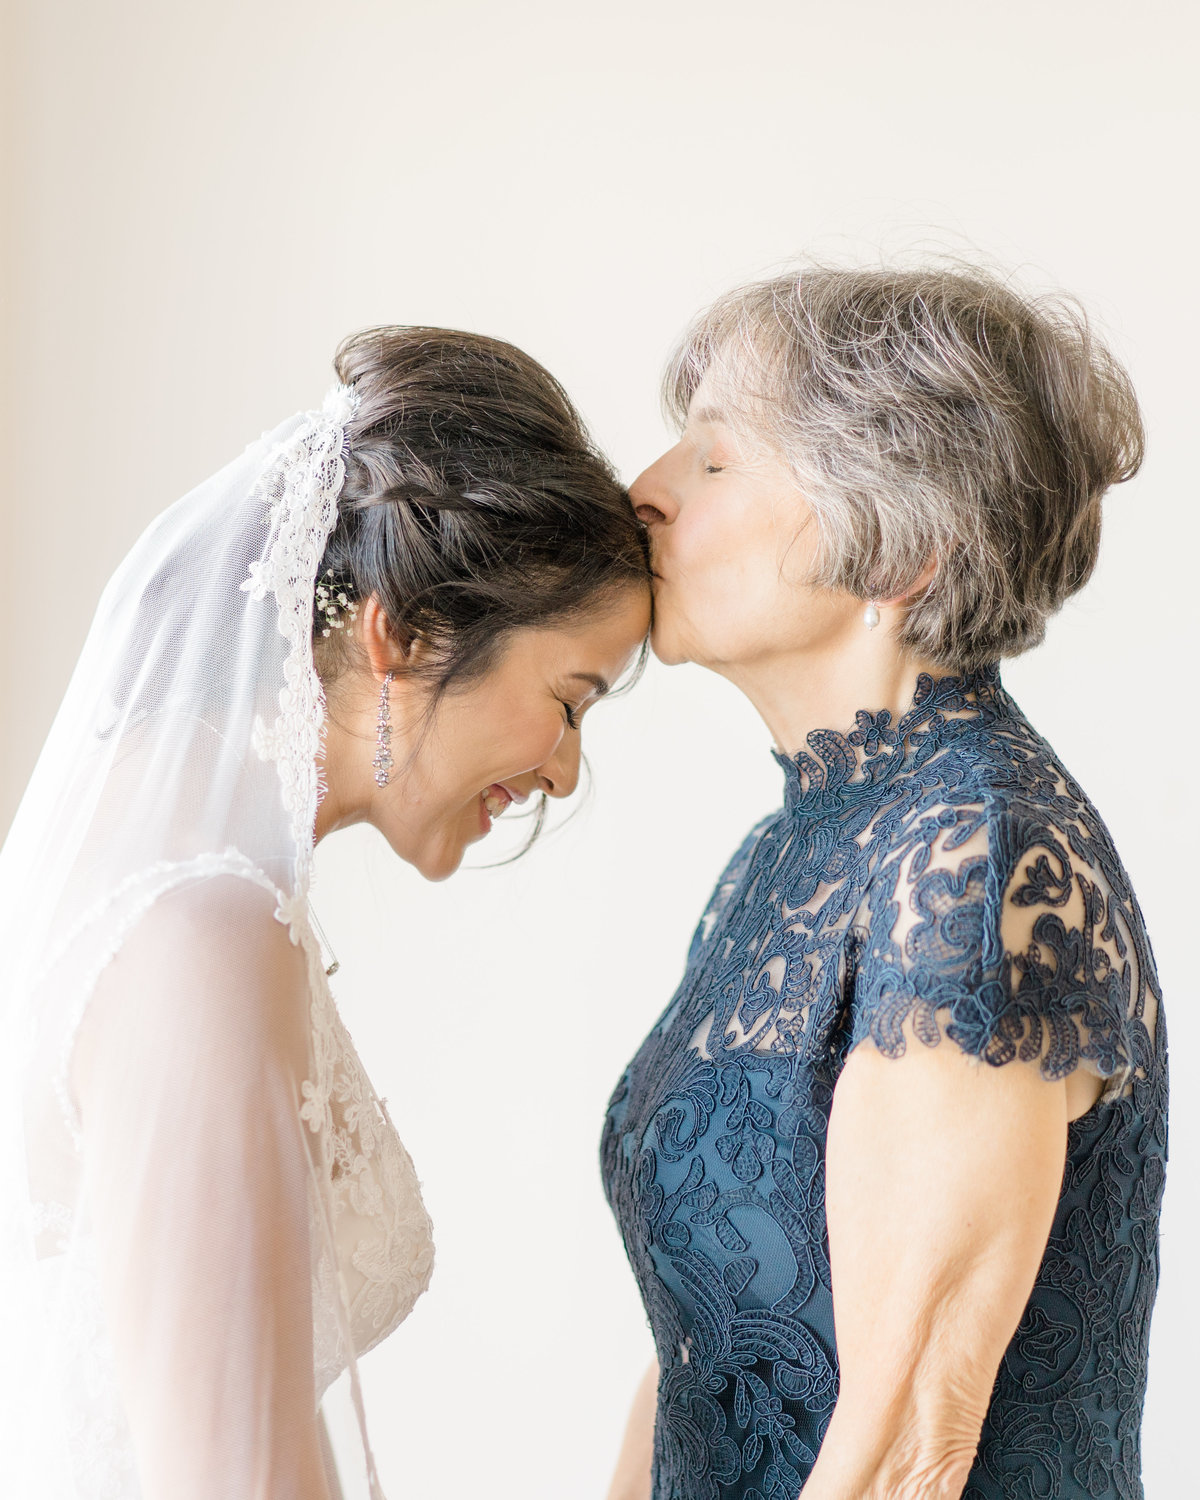 Mom-with-bride-wedding-photography